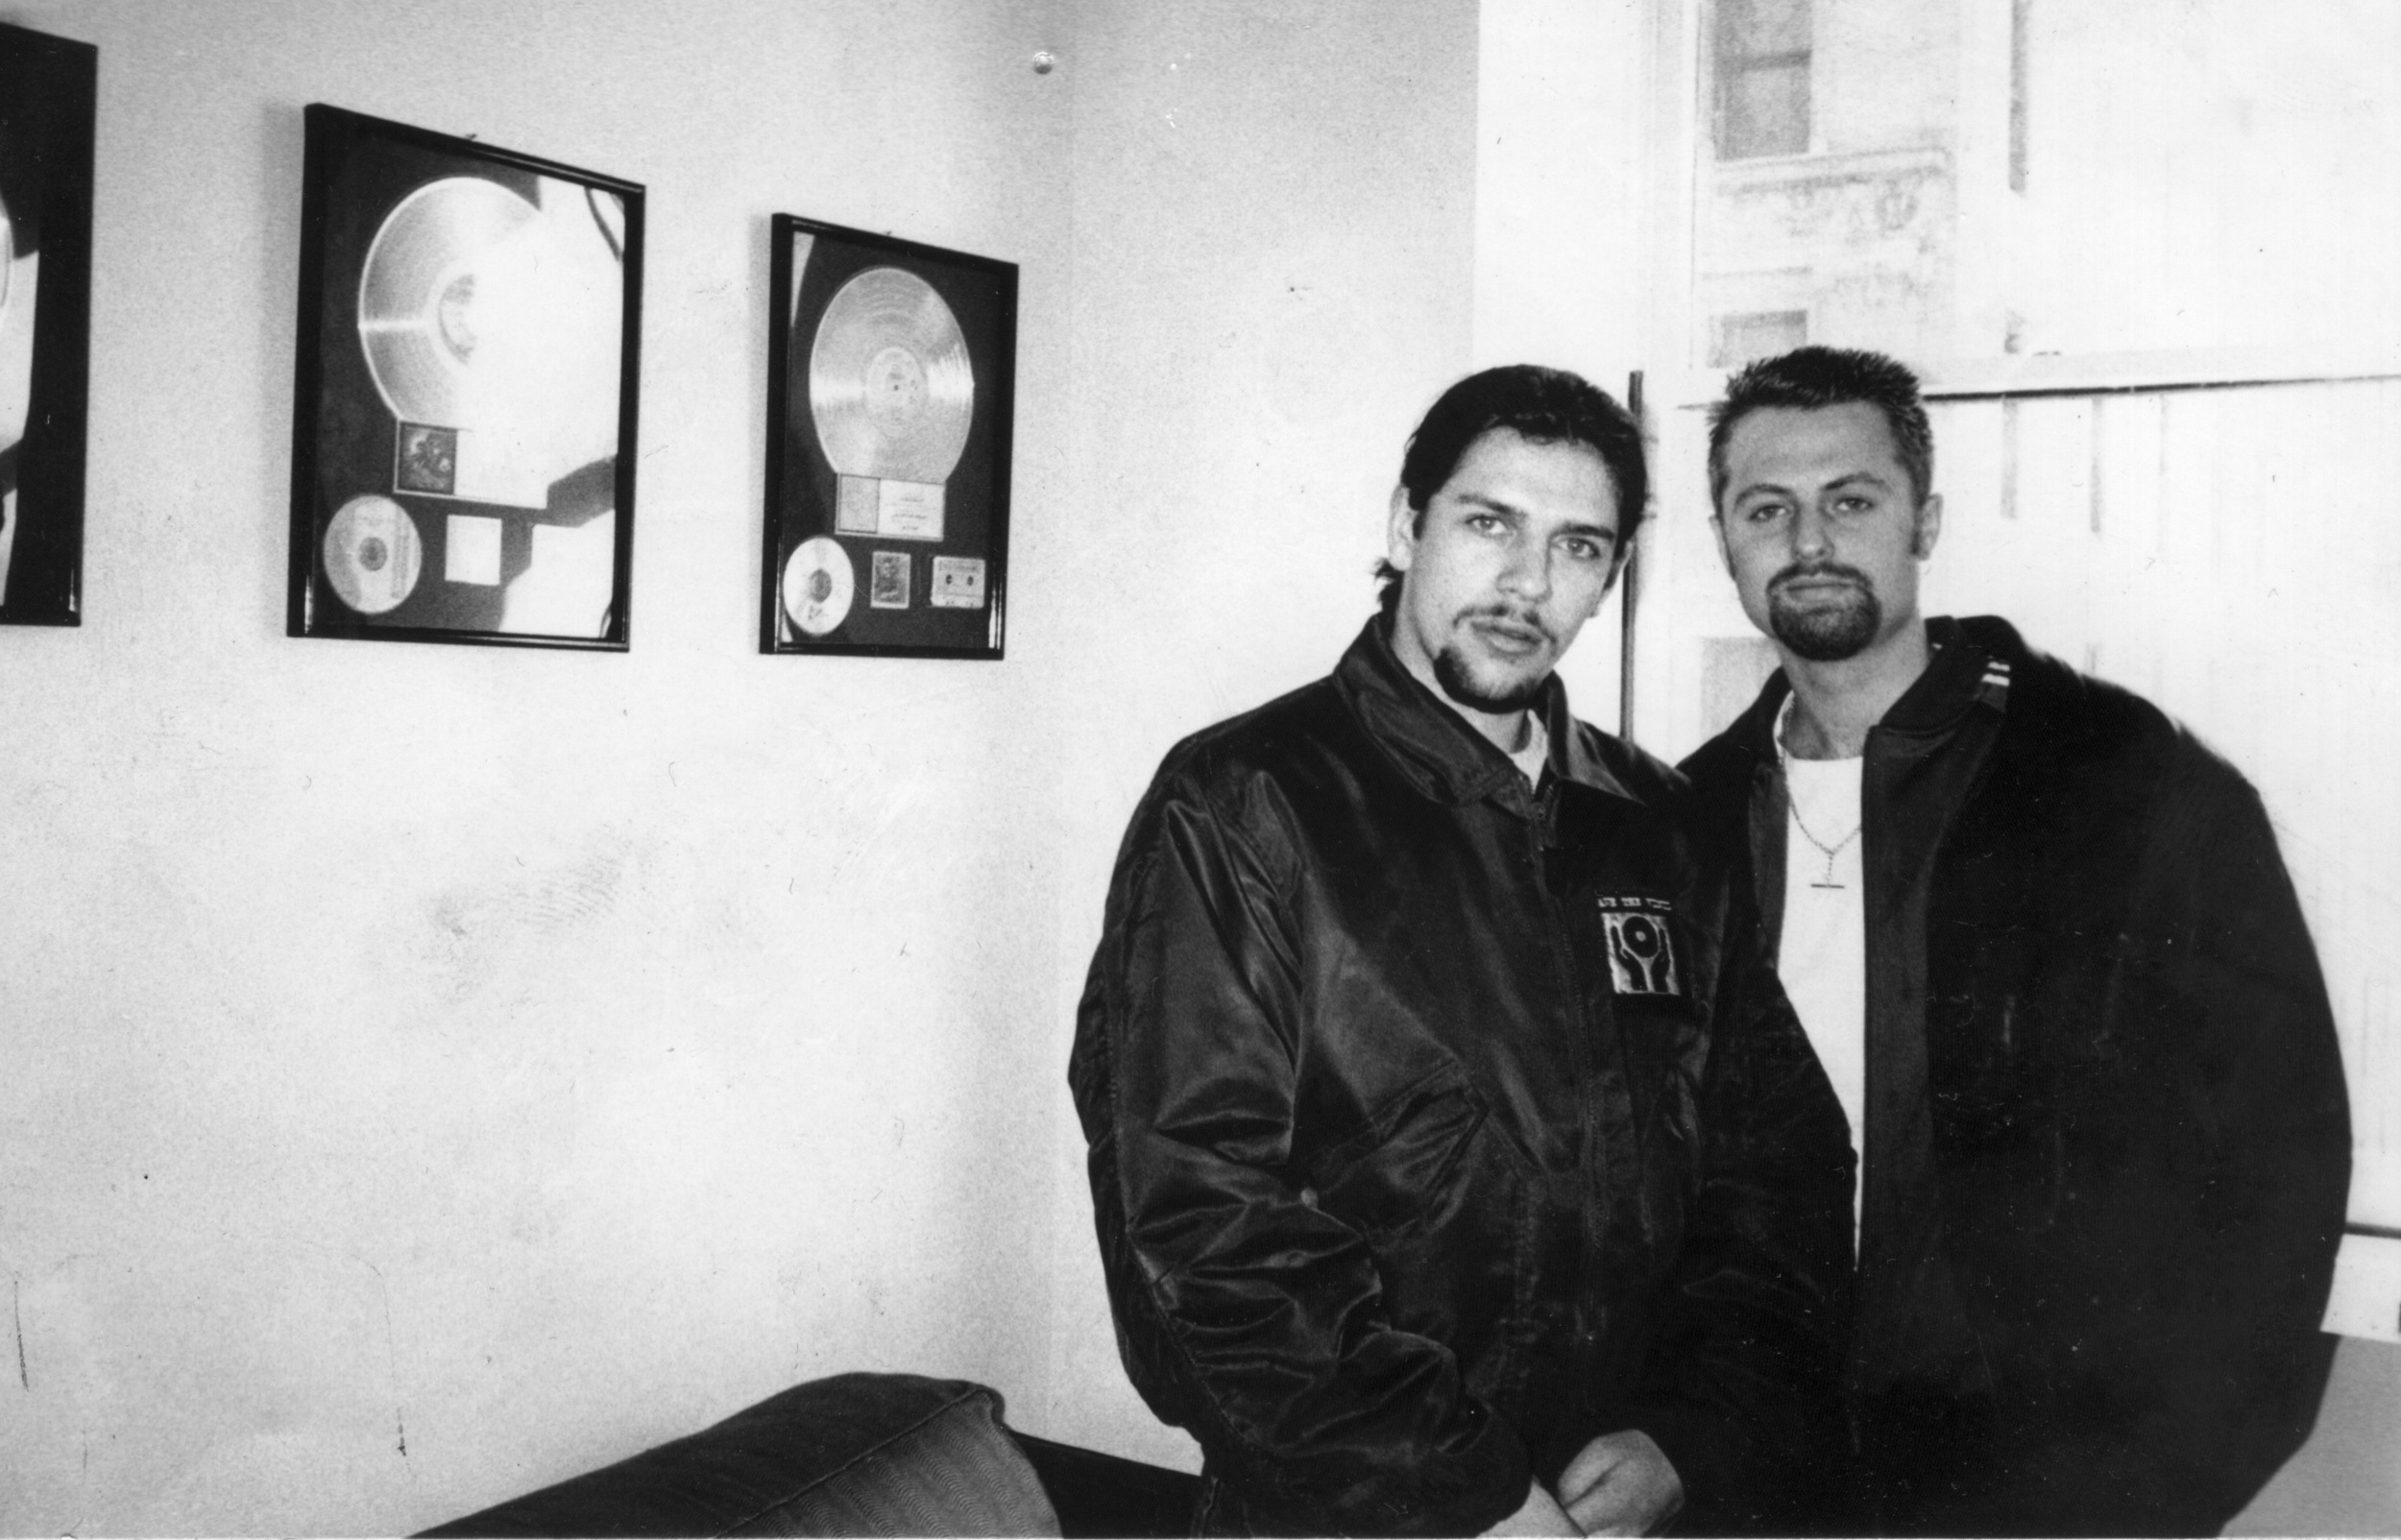 RICHARD RAMSEY (Left) and NEALE EASTERBY (Right) - NEW YORK, 1996